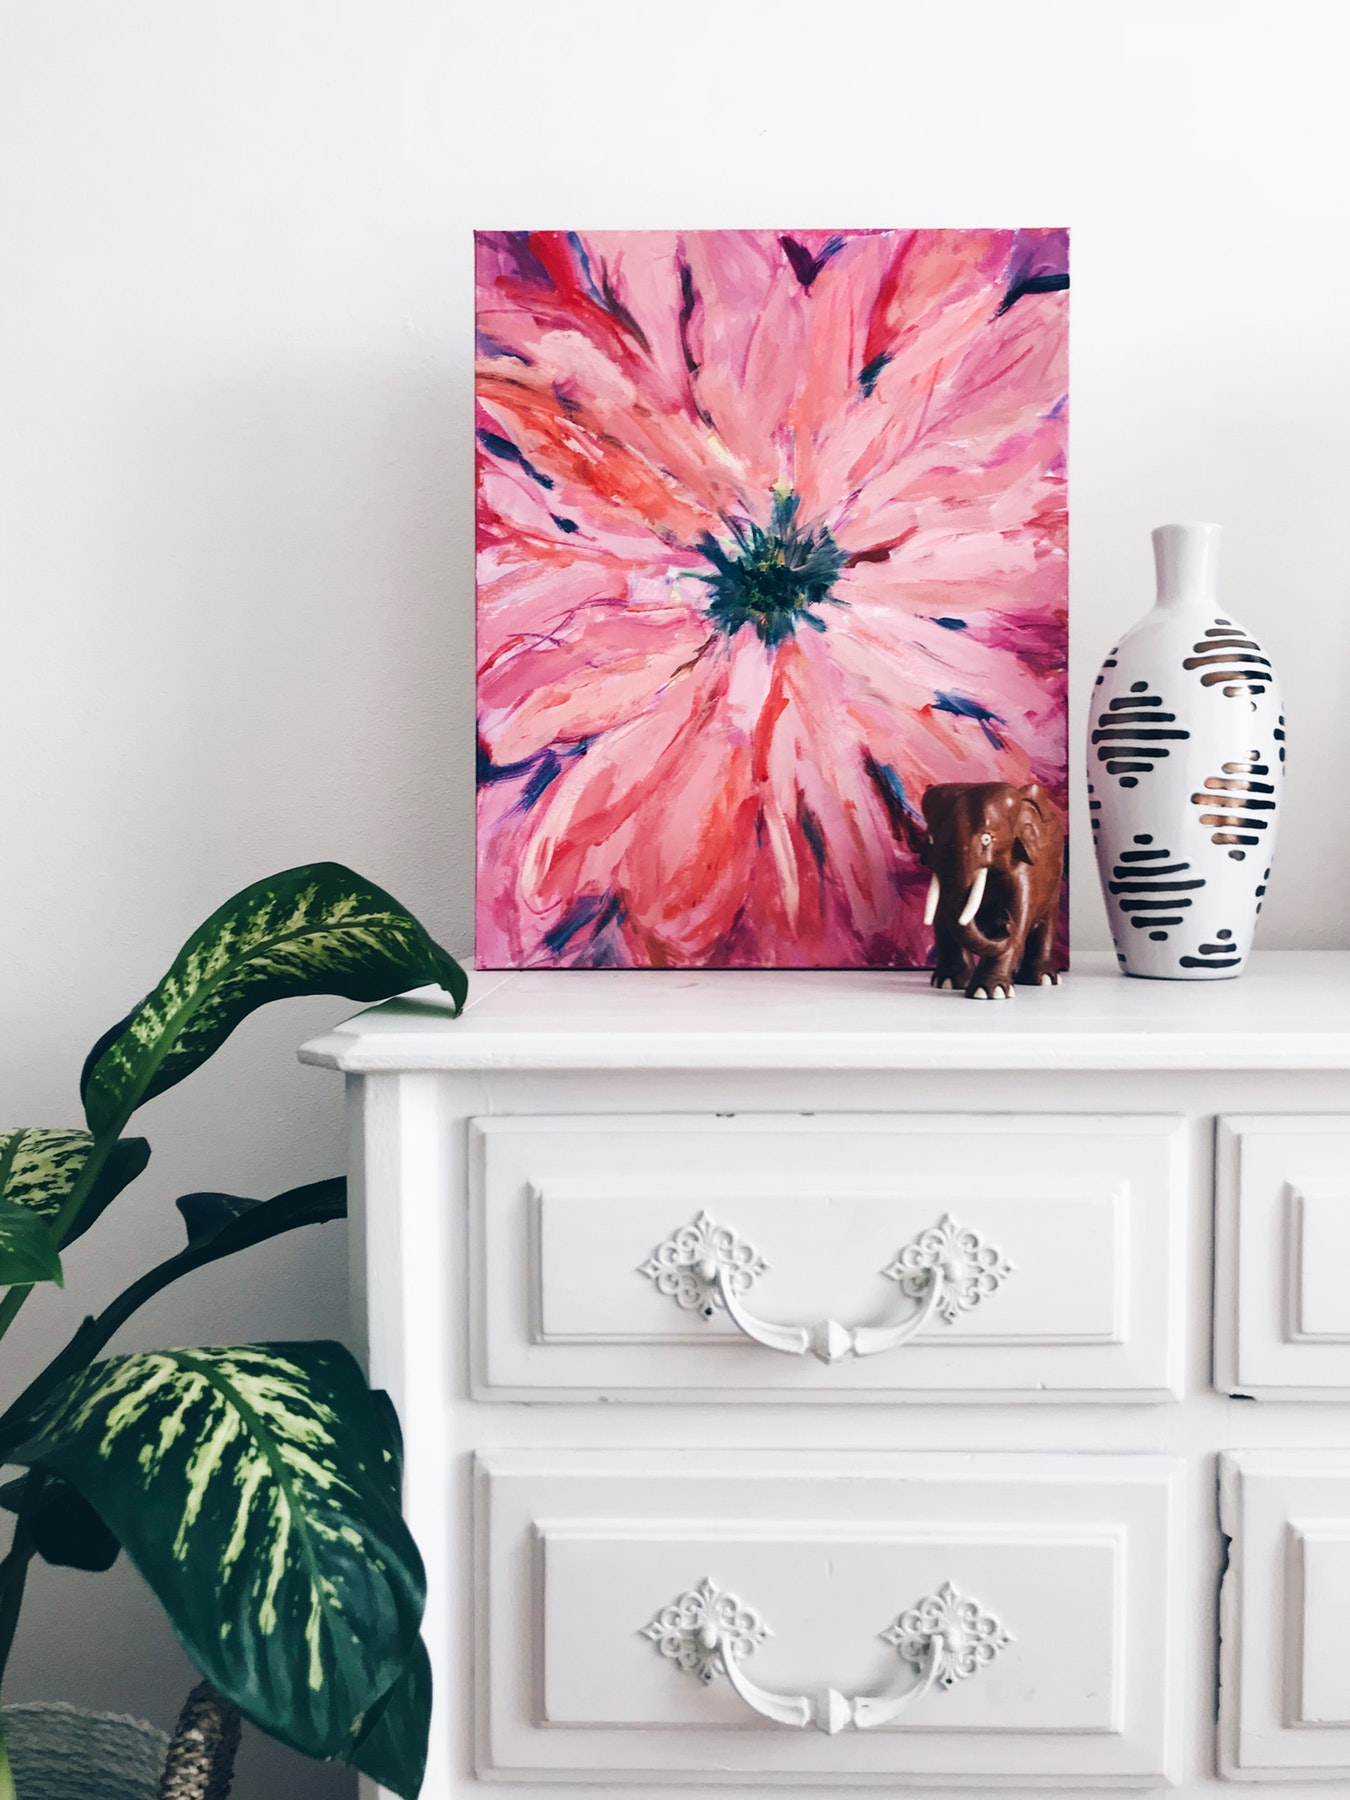 7 Vintage Furniture Trends To Fall In Love With! 1 vintage furniture trends 7 Vintage Furniture Trends To Fall In Love With! 7 Vintage Furniture Trends To Fall In Love With 1